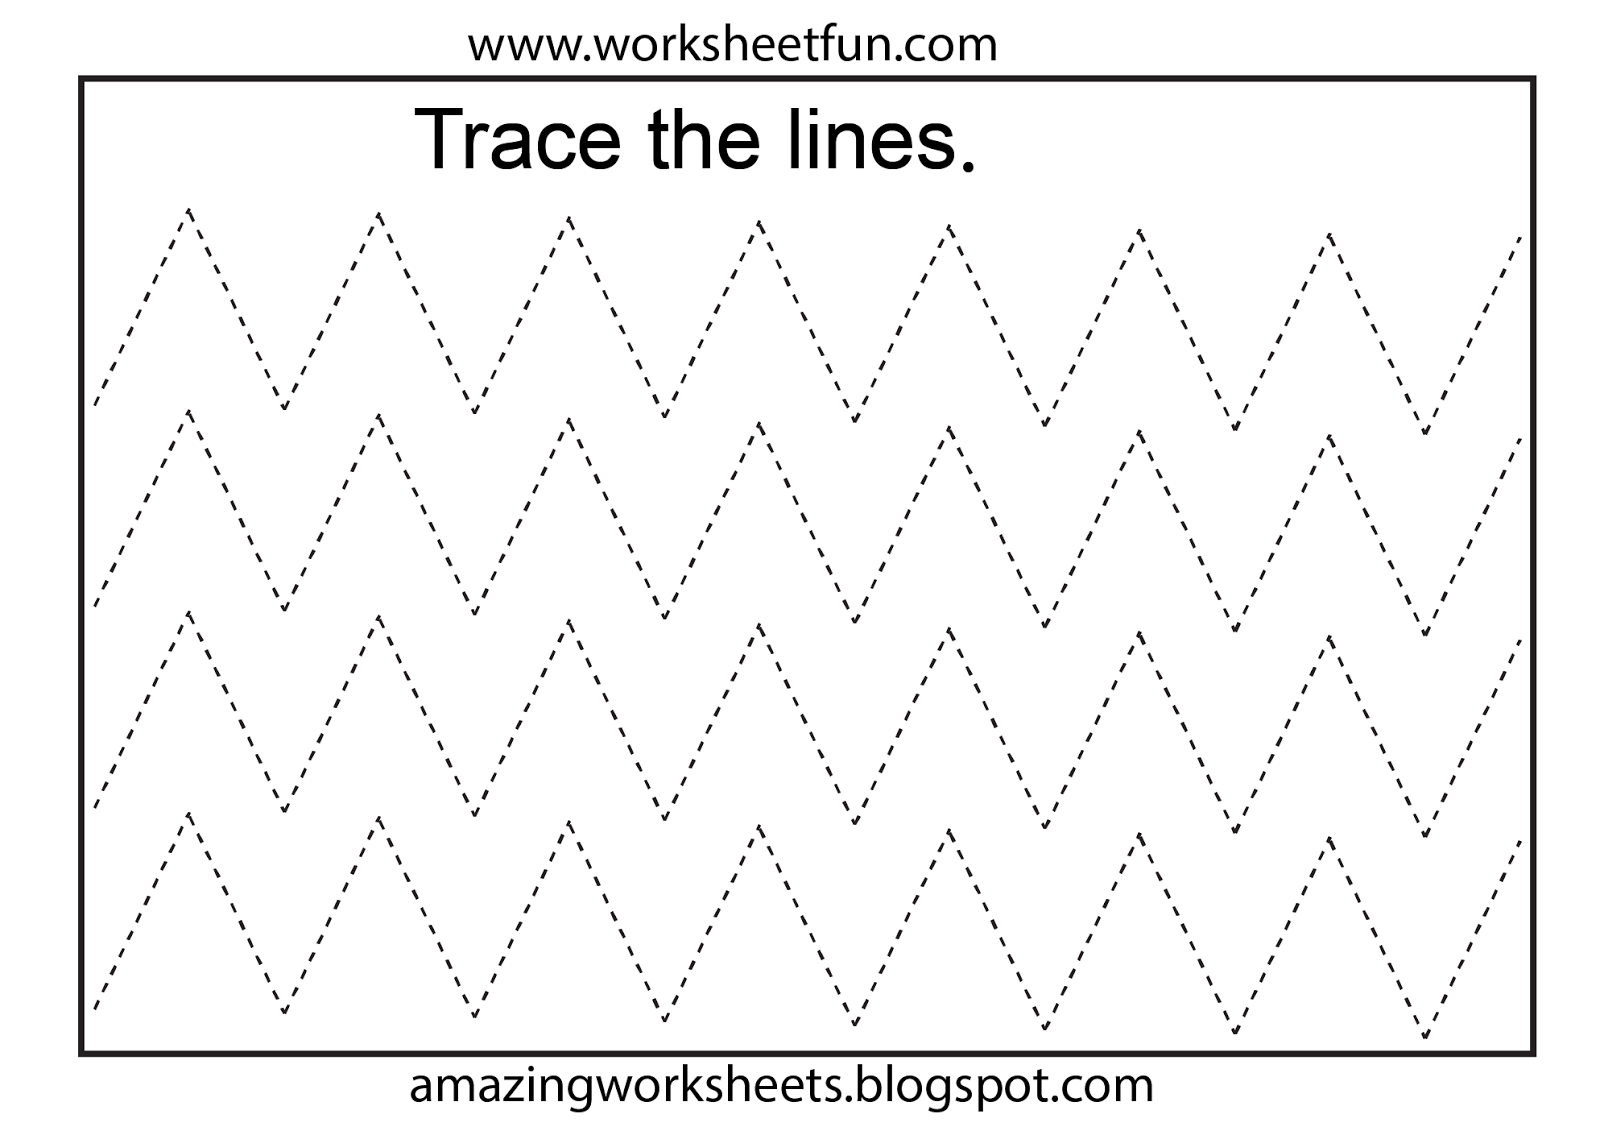 Preschool Tracing Lines Worksheets Image Search Results cakepins ...